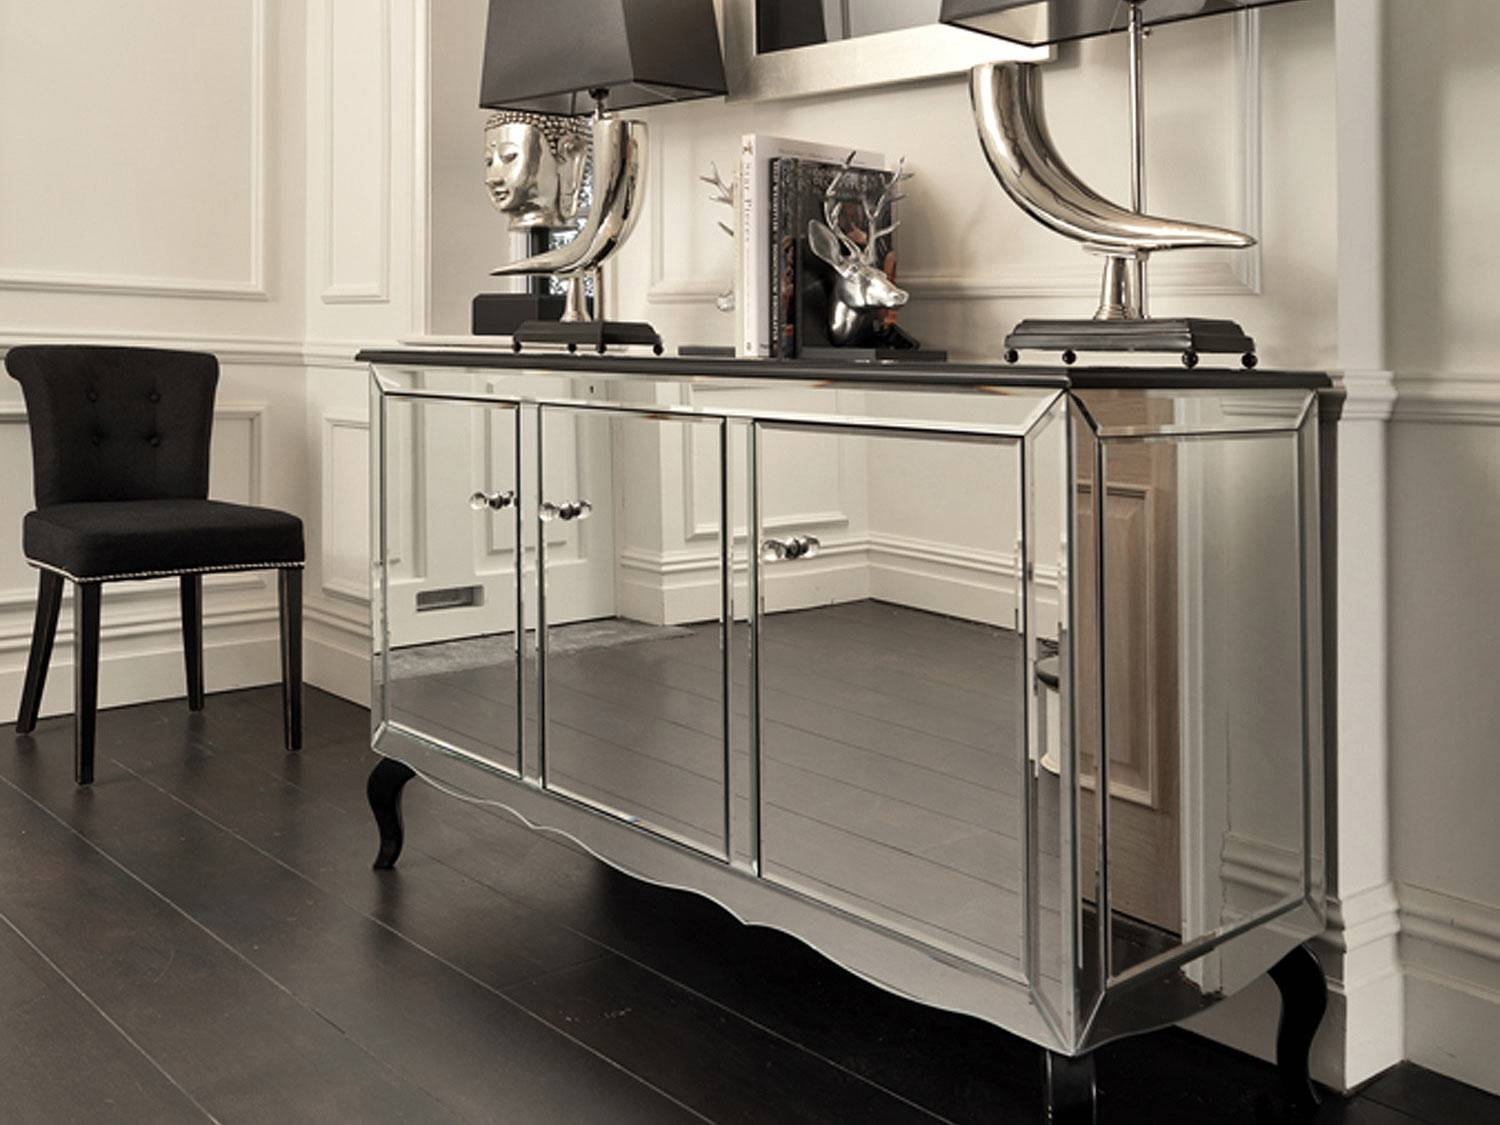 Black Orchid | Mirrored Sideboard | Black Gloss Cabinet intended for Mirrored Sideboards (Image 5 of 30)